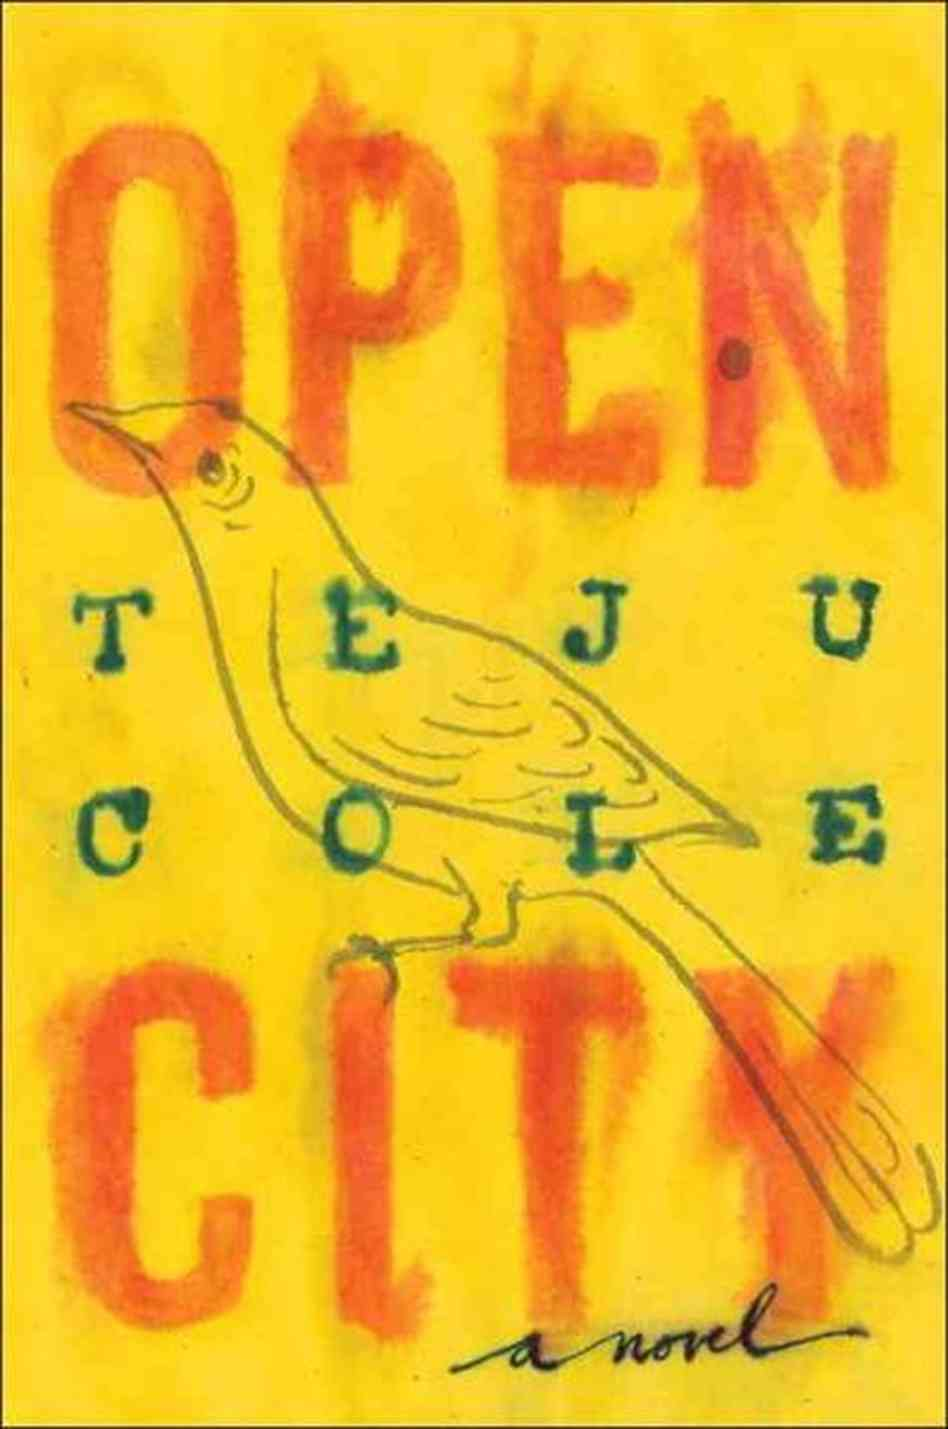 2012 - Teju Cole for  Open City